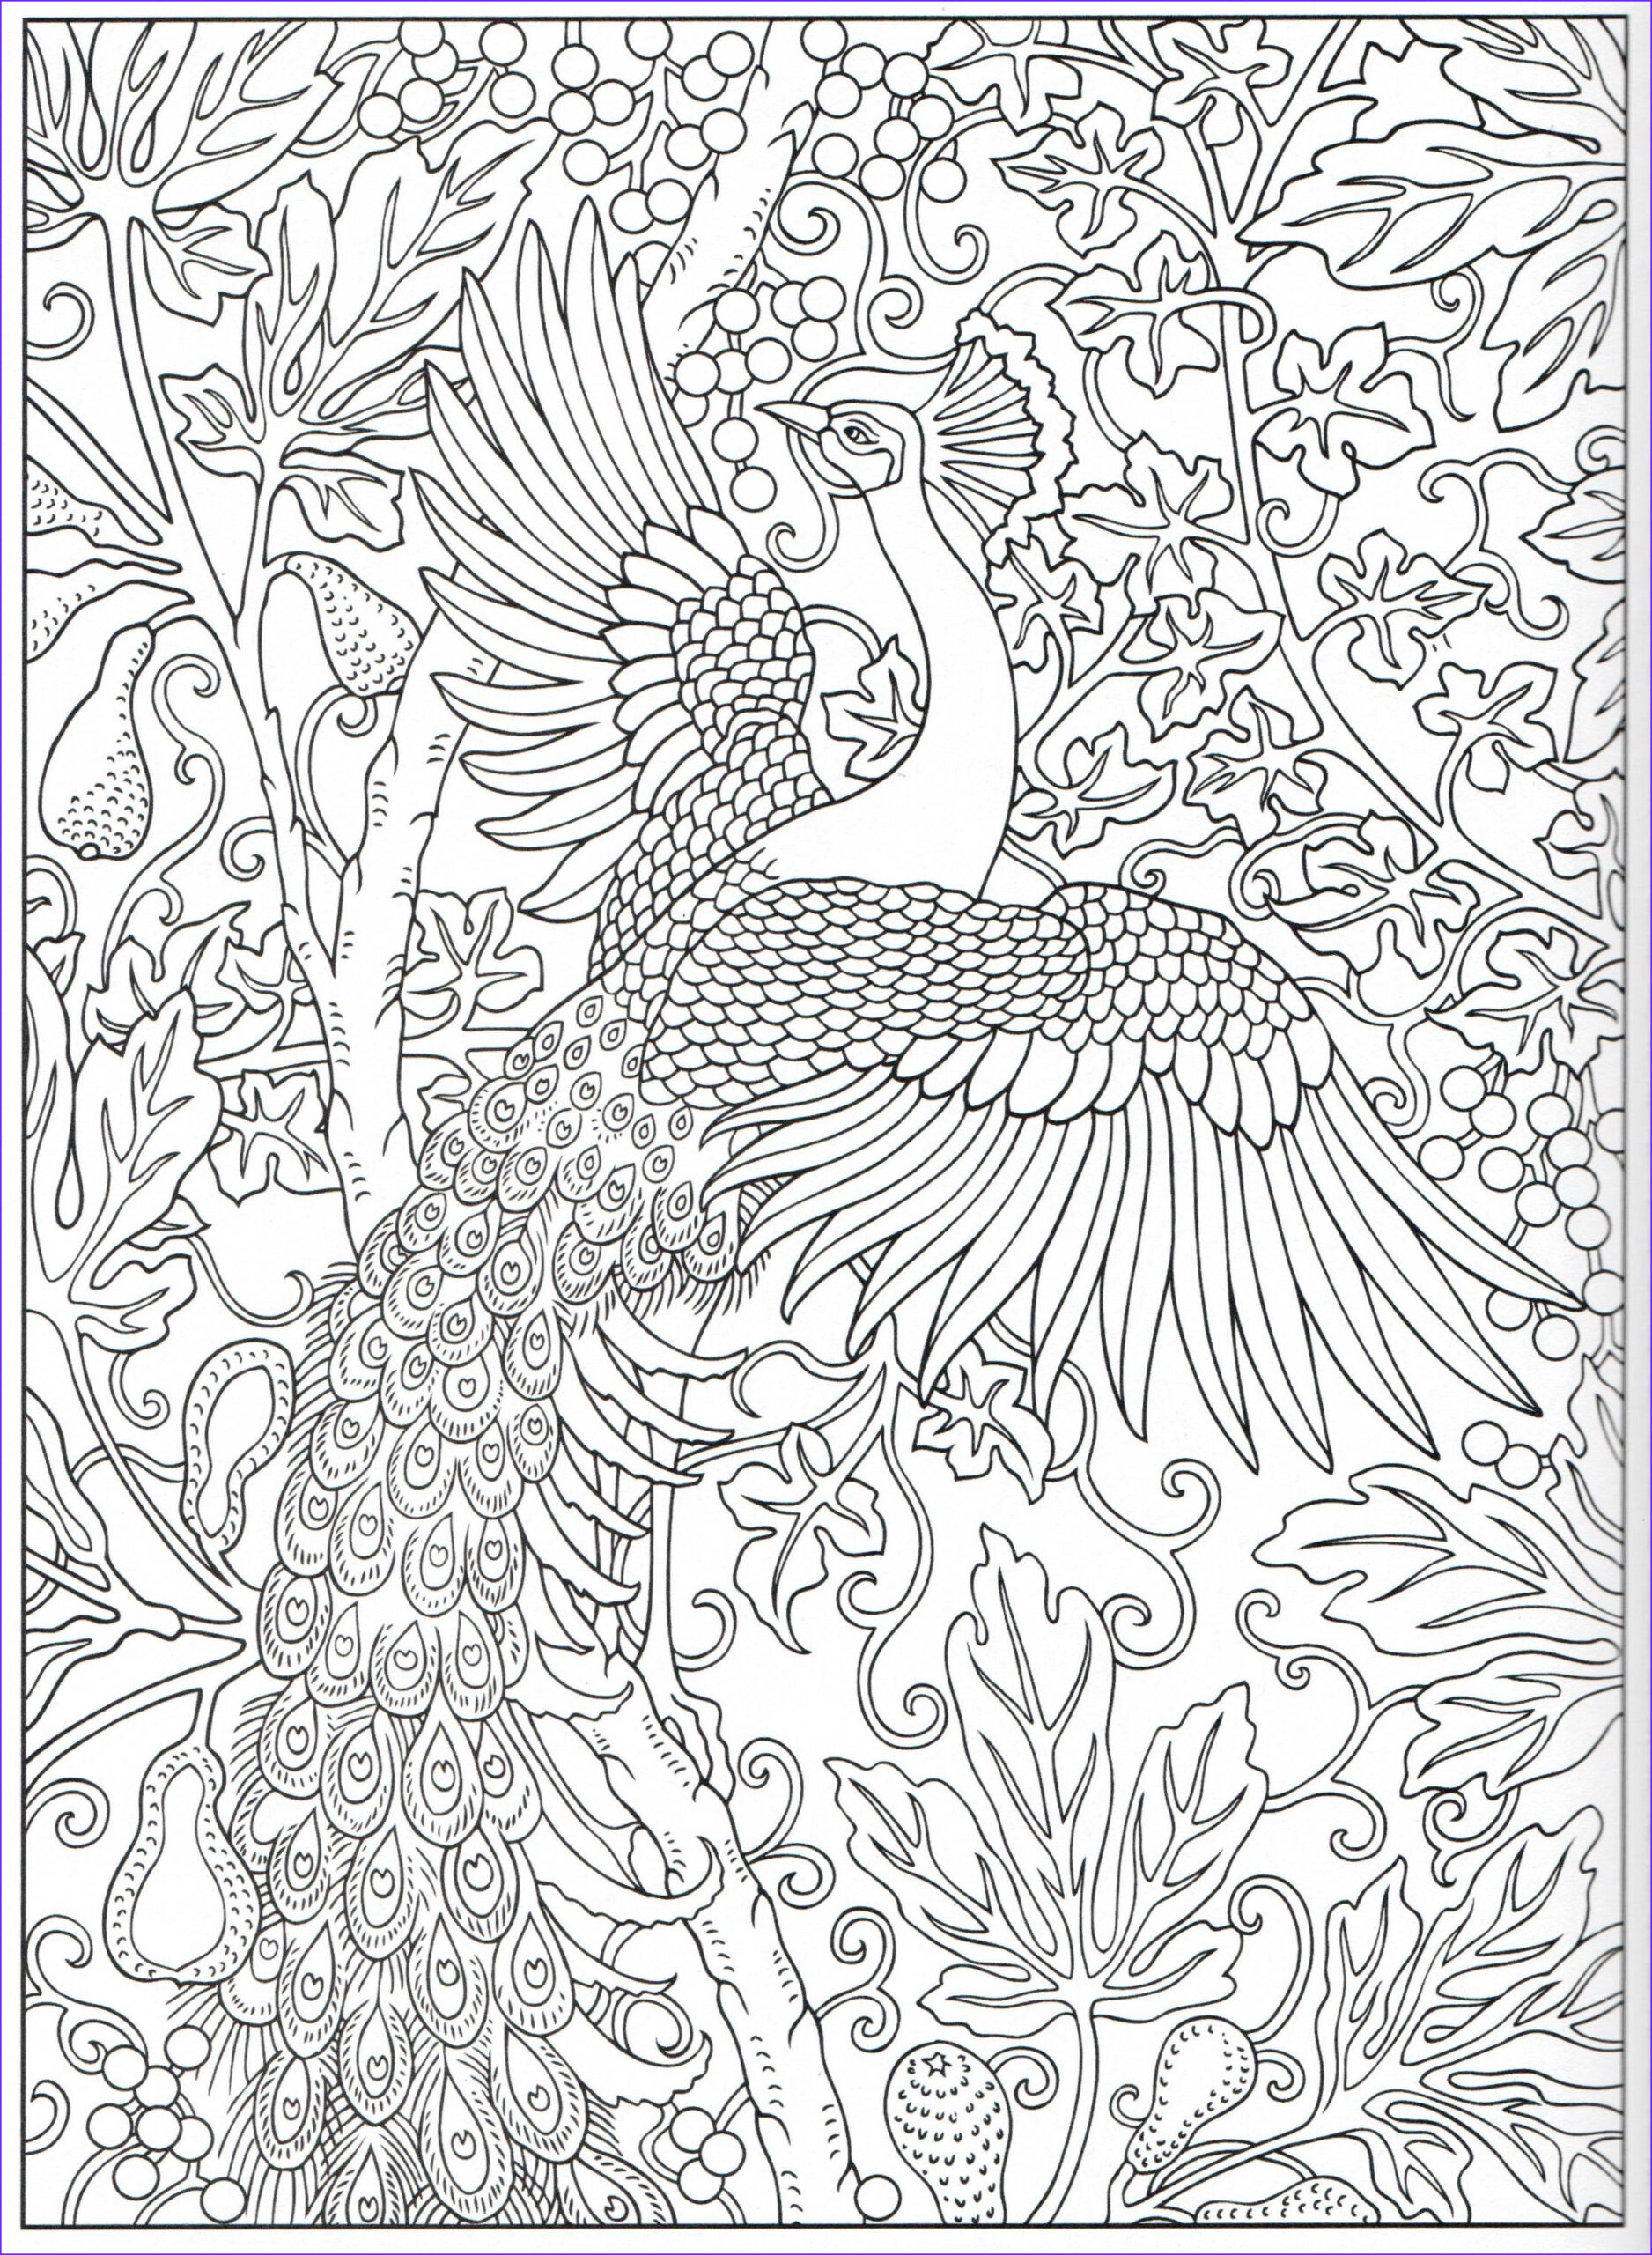 Peacock Coloring Book Inspirational Collection Peacock Coloring Page 15 31